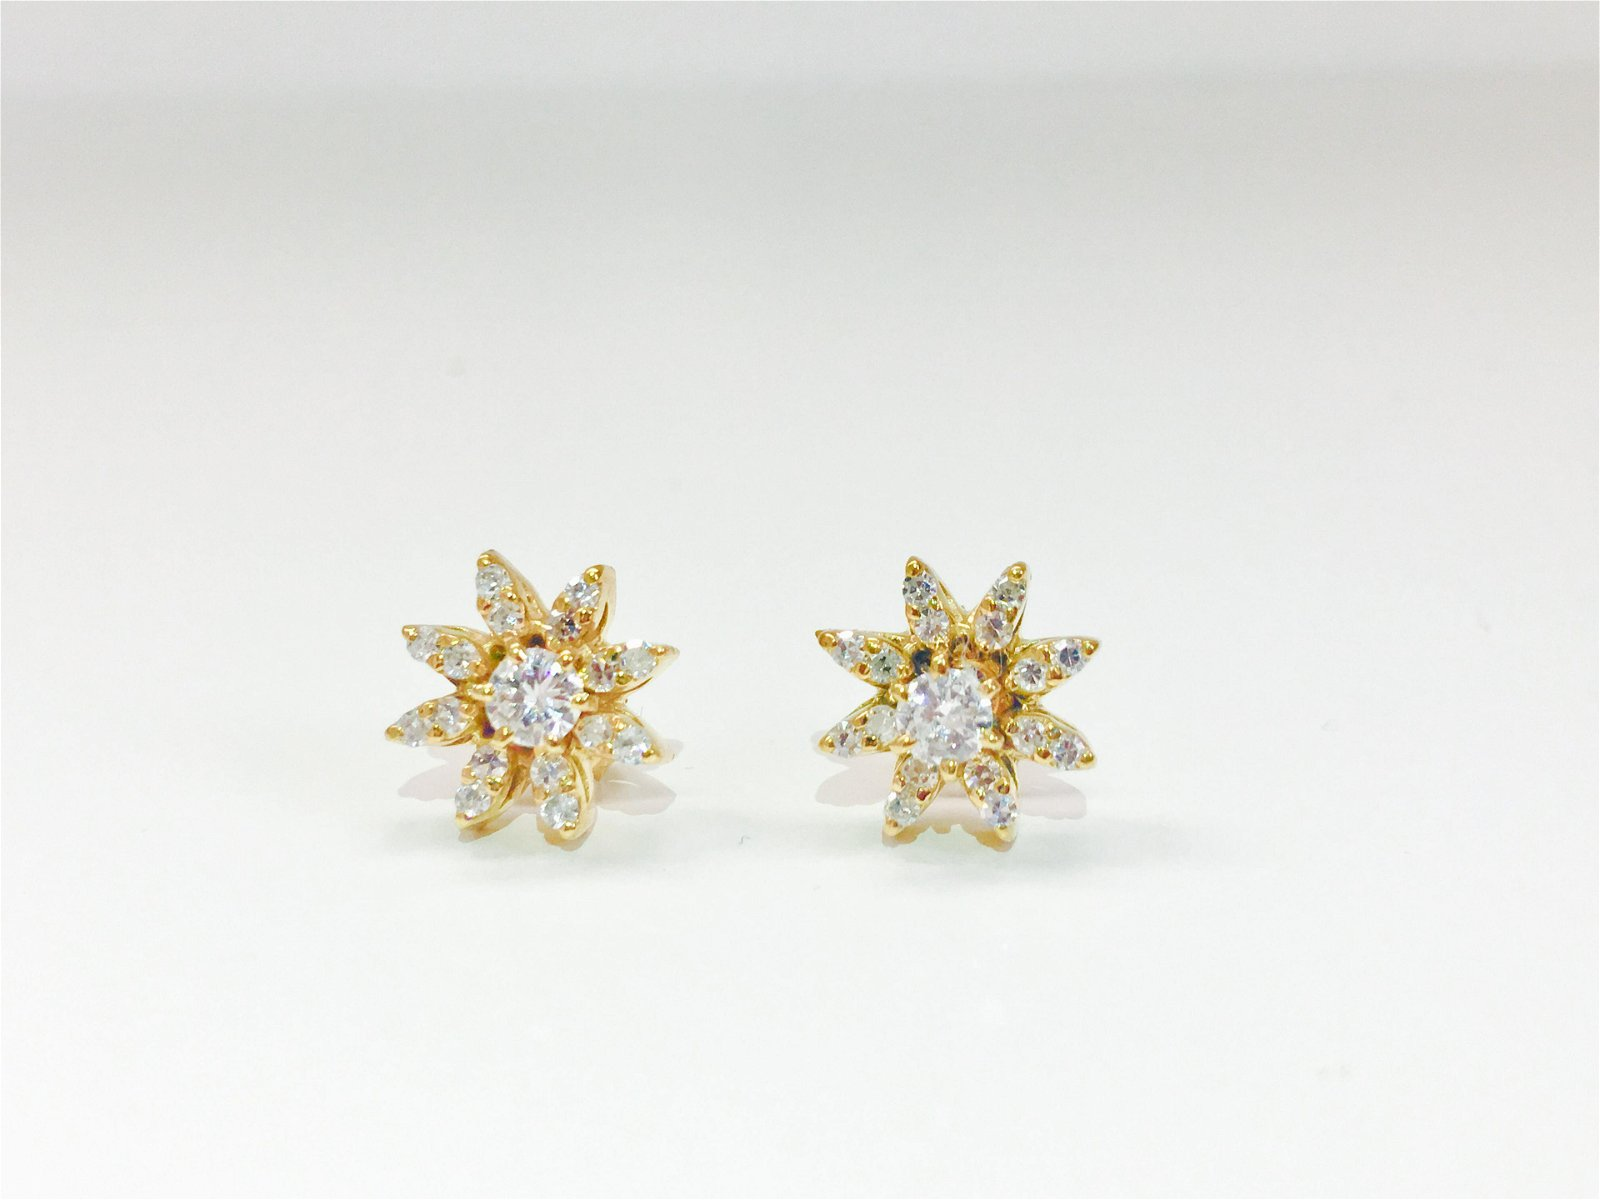 14K gold, 1.00 CT VS Clarity & G color Diamond Earrings